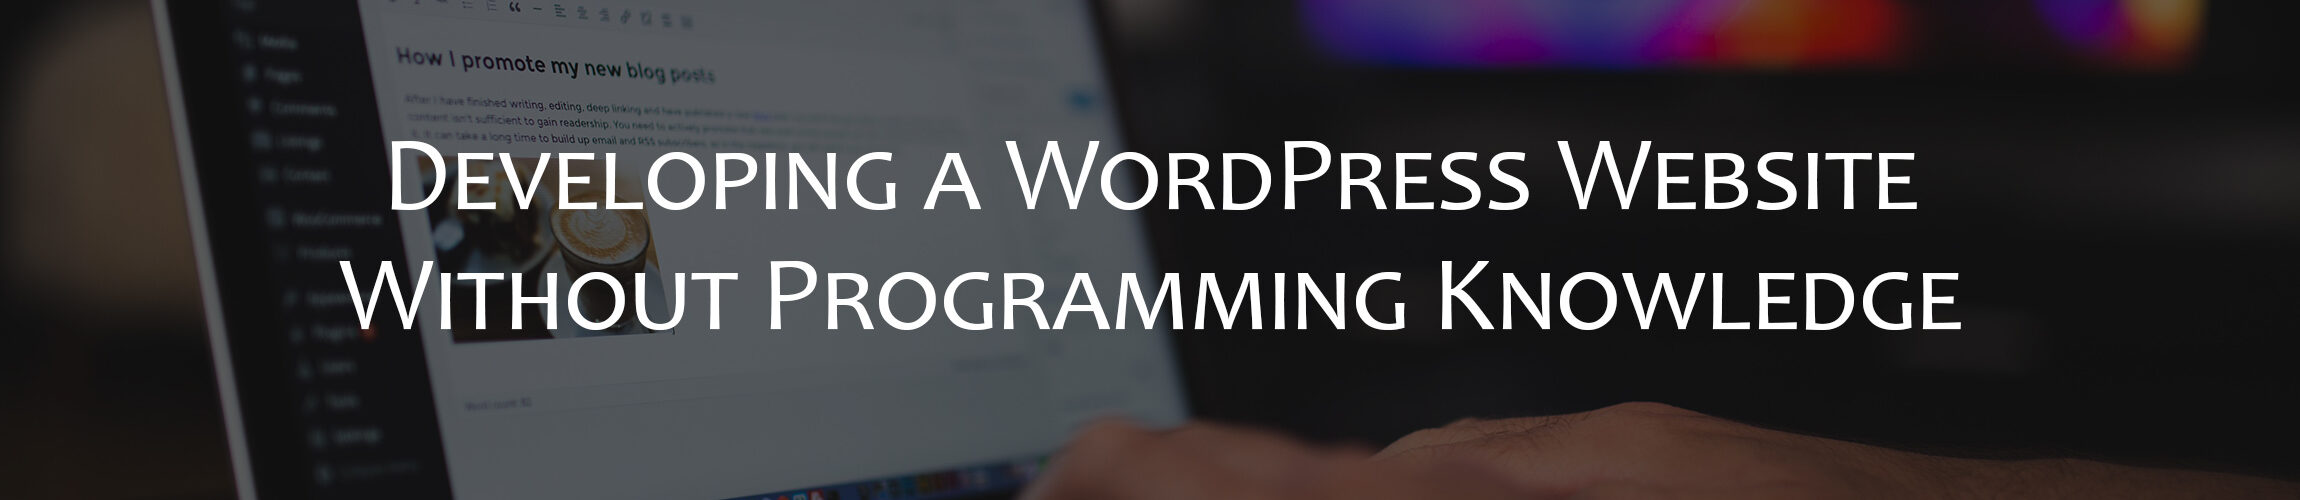 Developing a WordPress Website Without Programming Knowledge